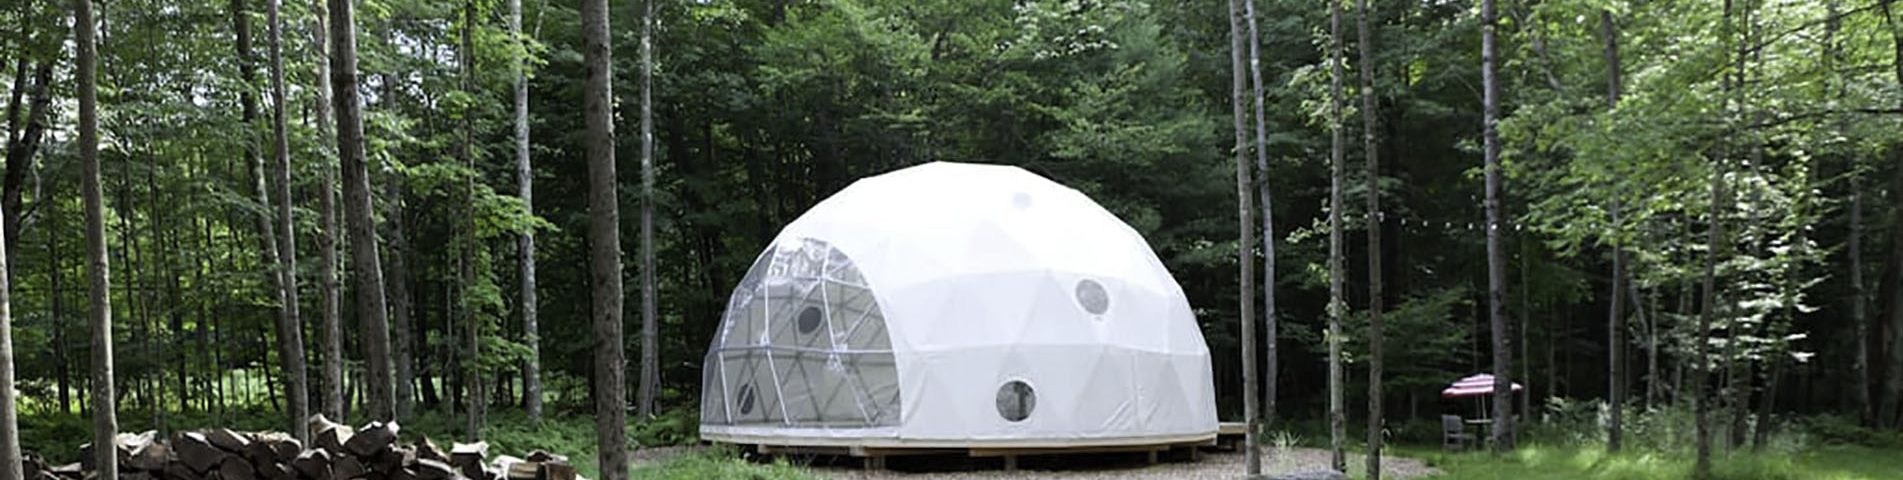 event dome, geodesic dome, pacific domes, wedding dome